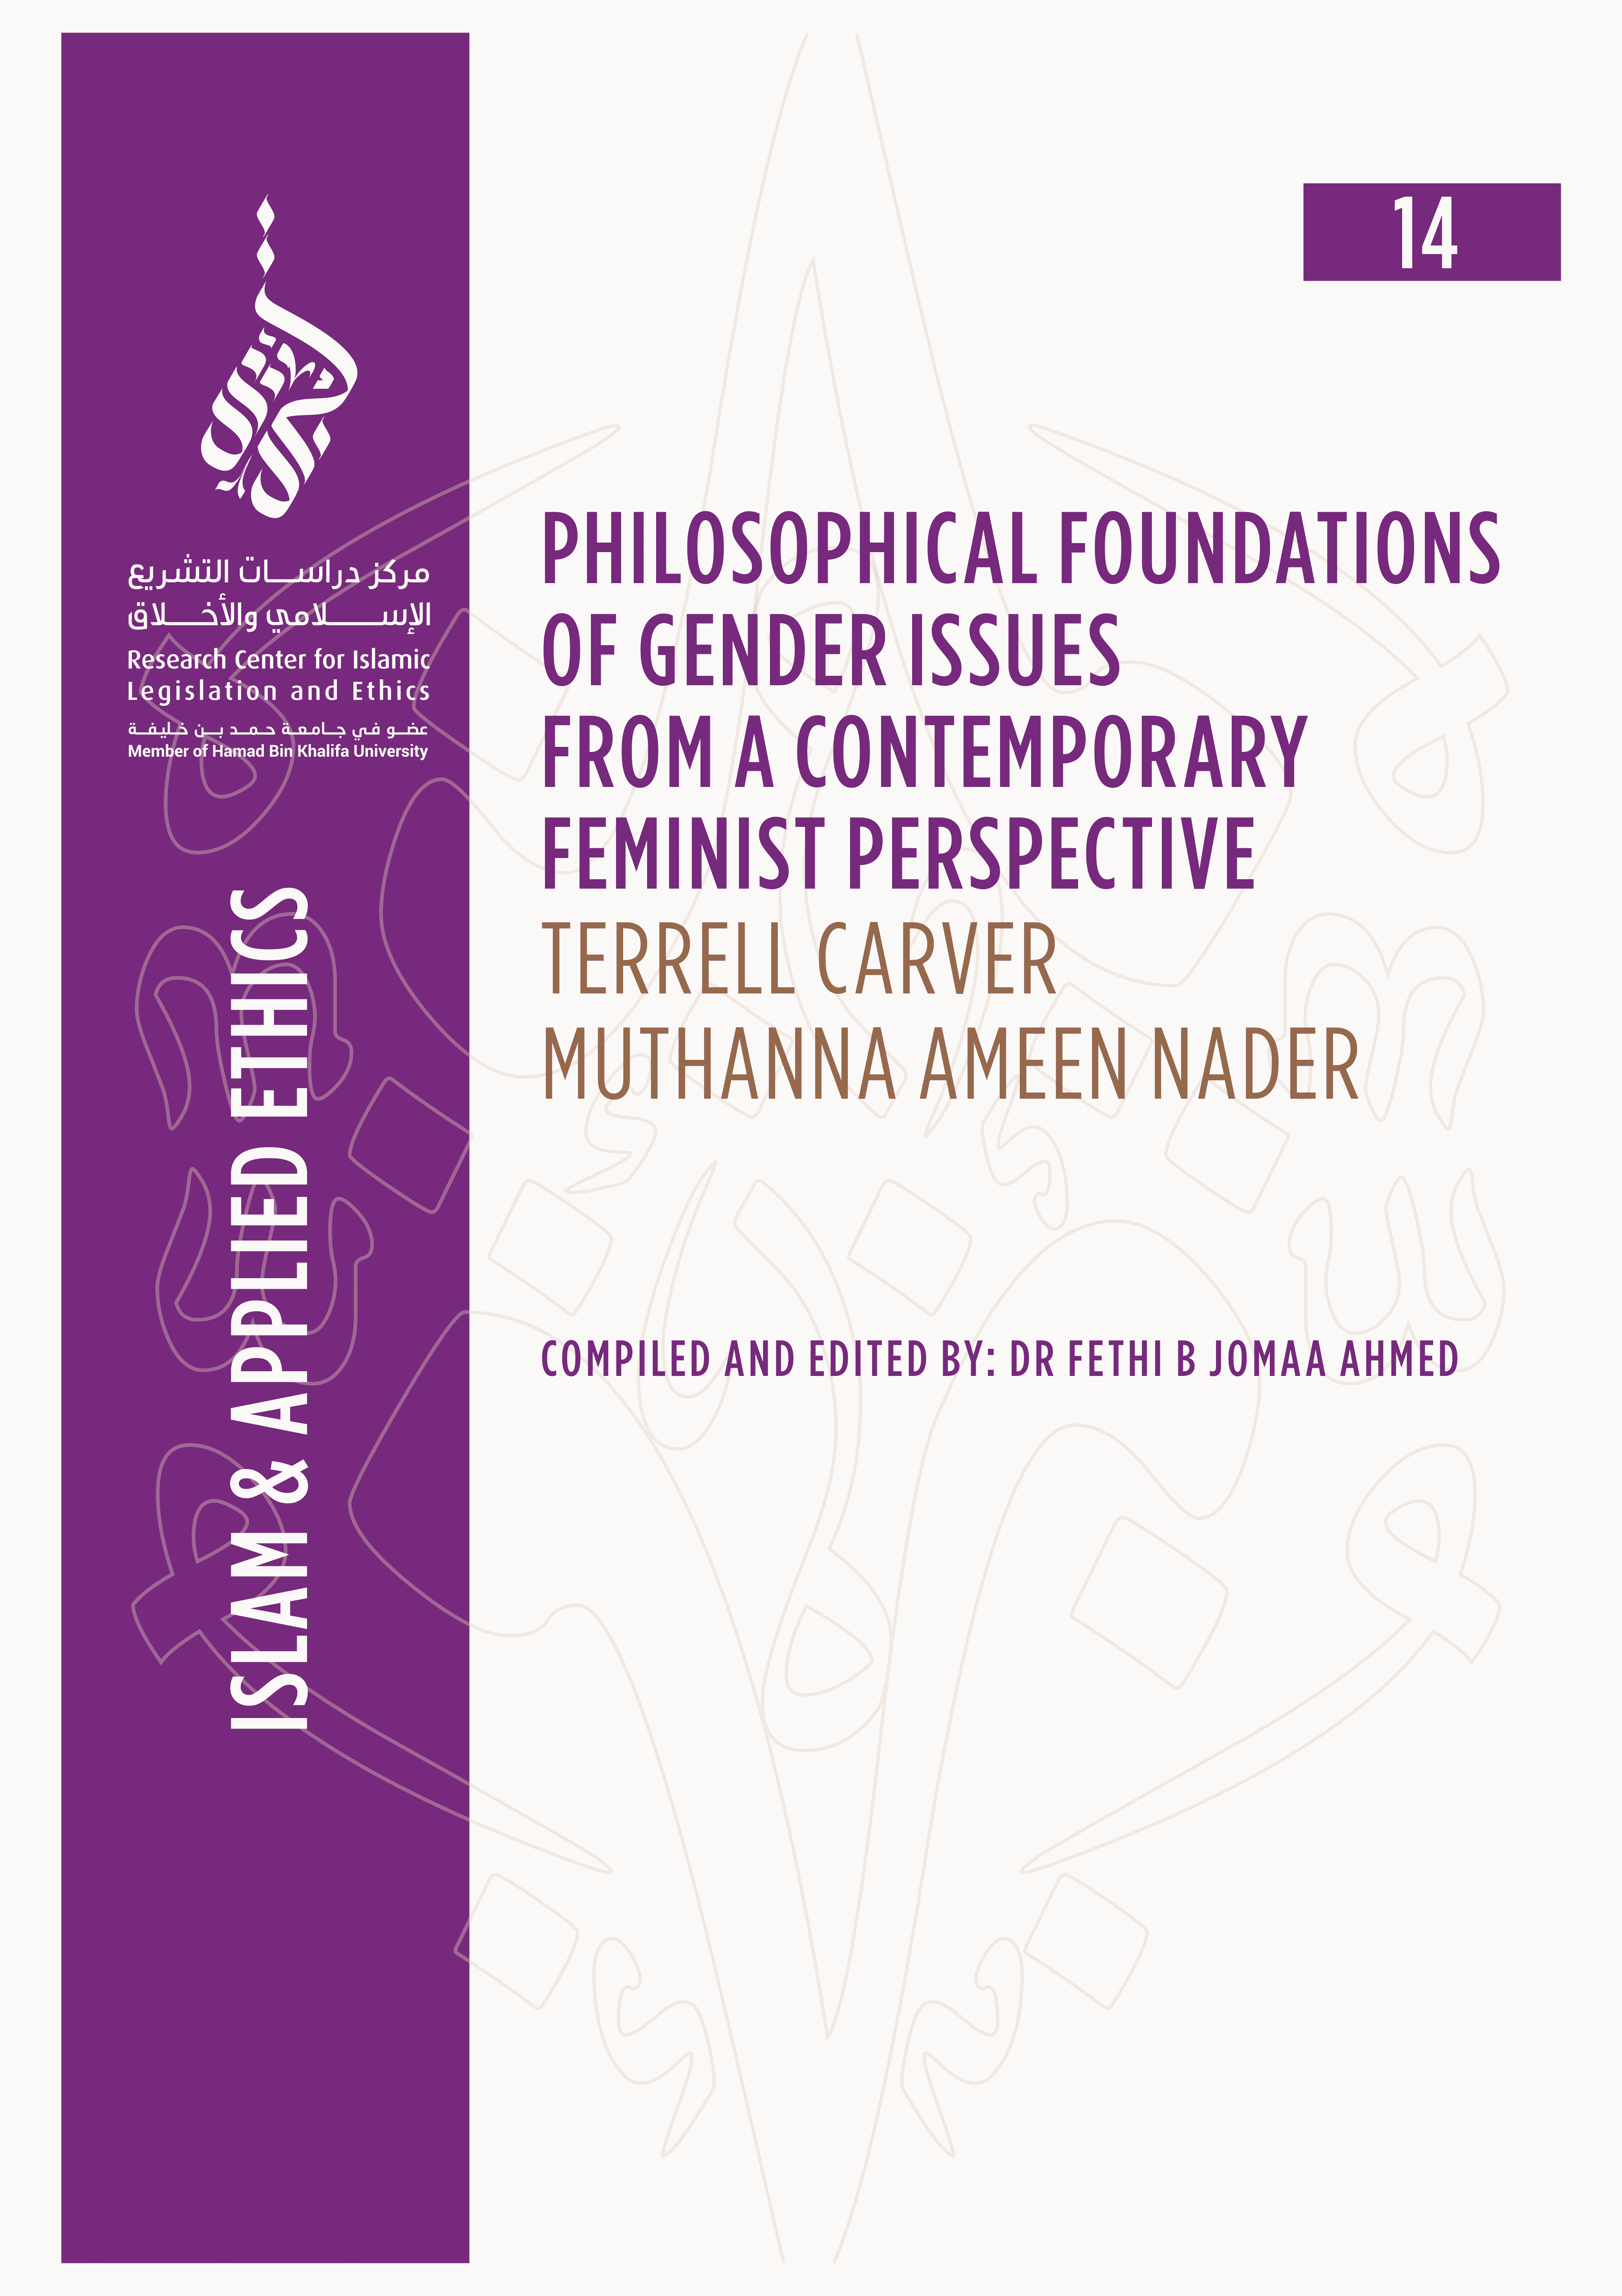 14/14 Philosophical Foundations of Gender Issues from a Contemporary Feminist Perspective